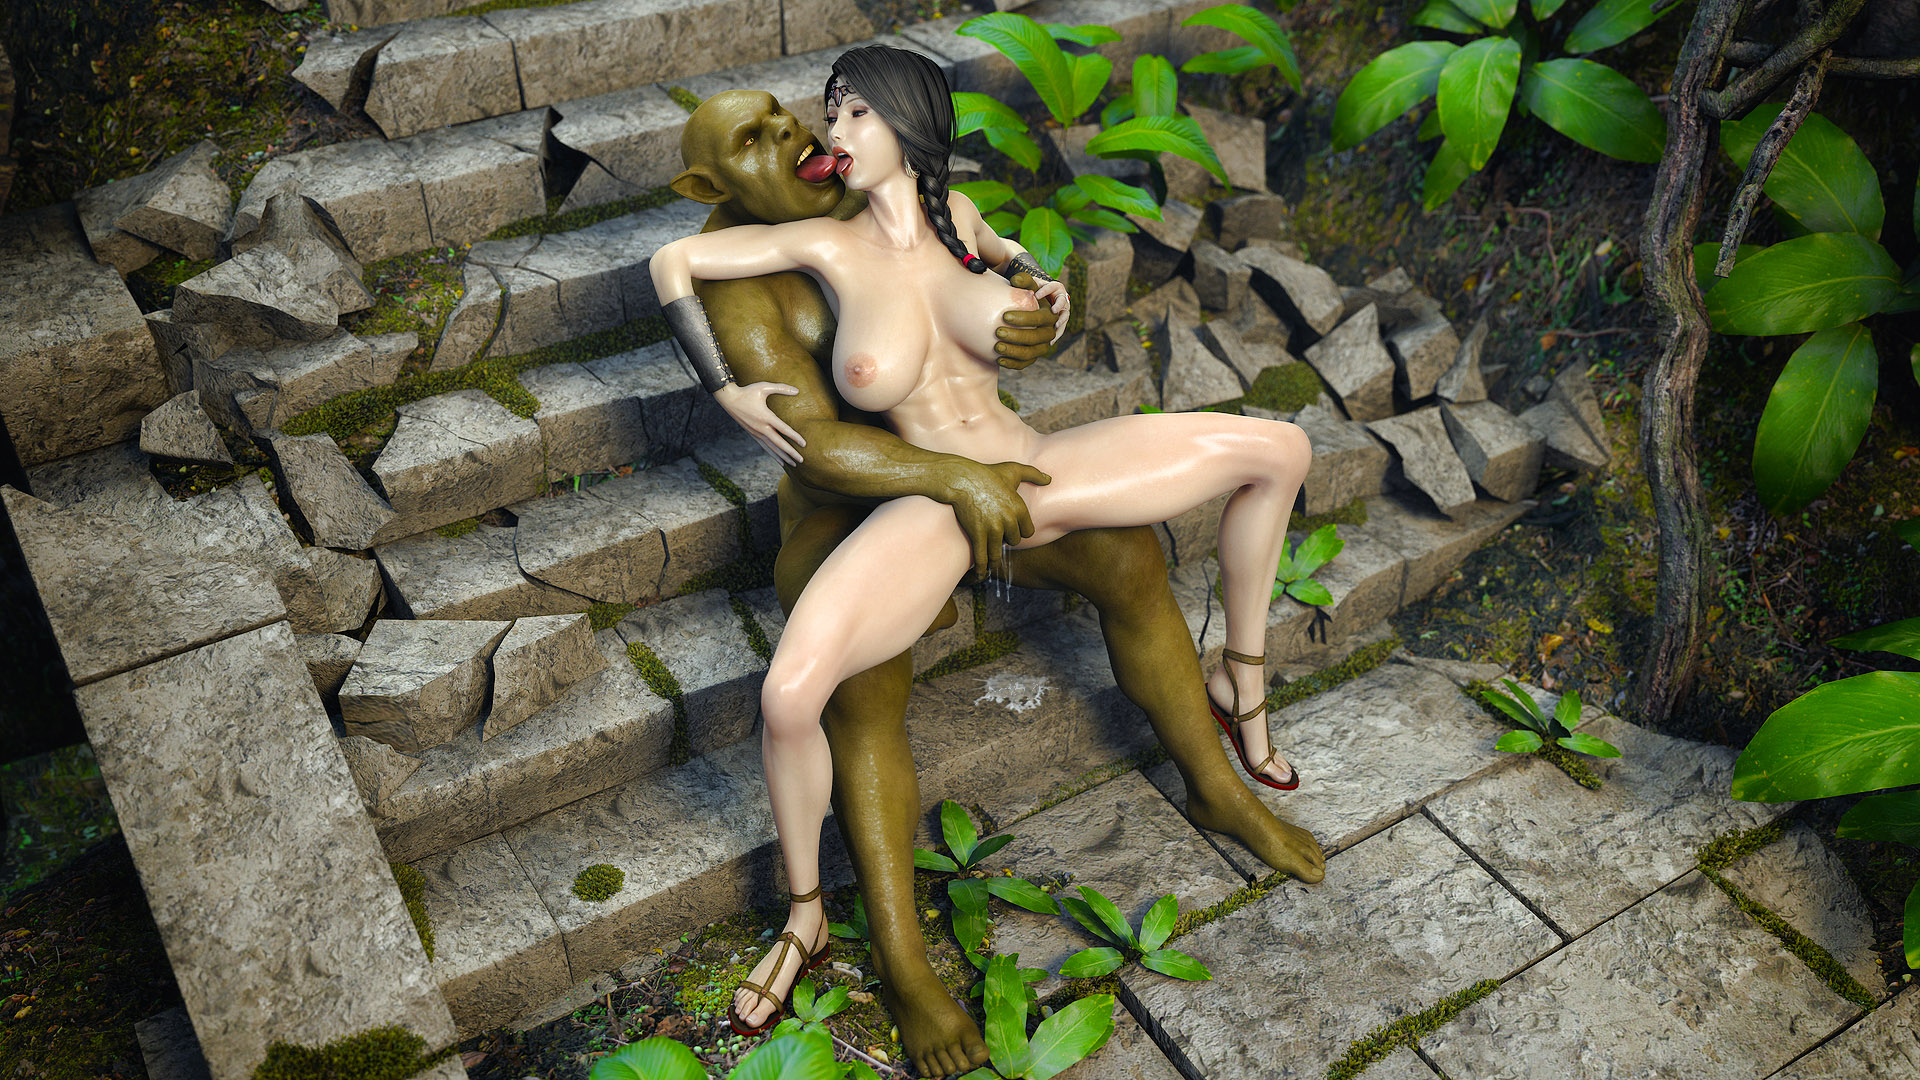 Elf princess fucked by a ogre sex  anime galleries